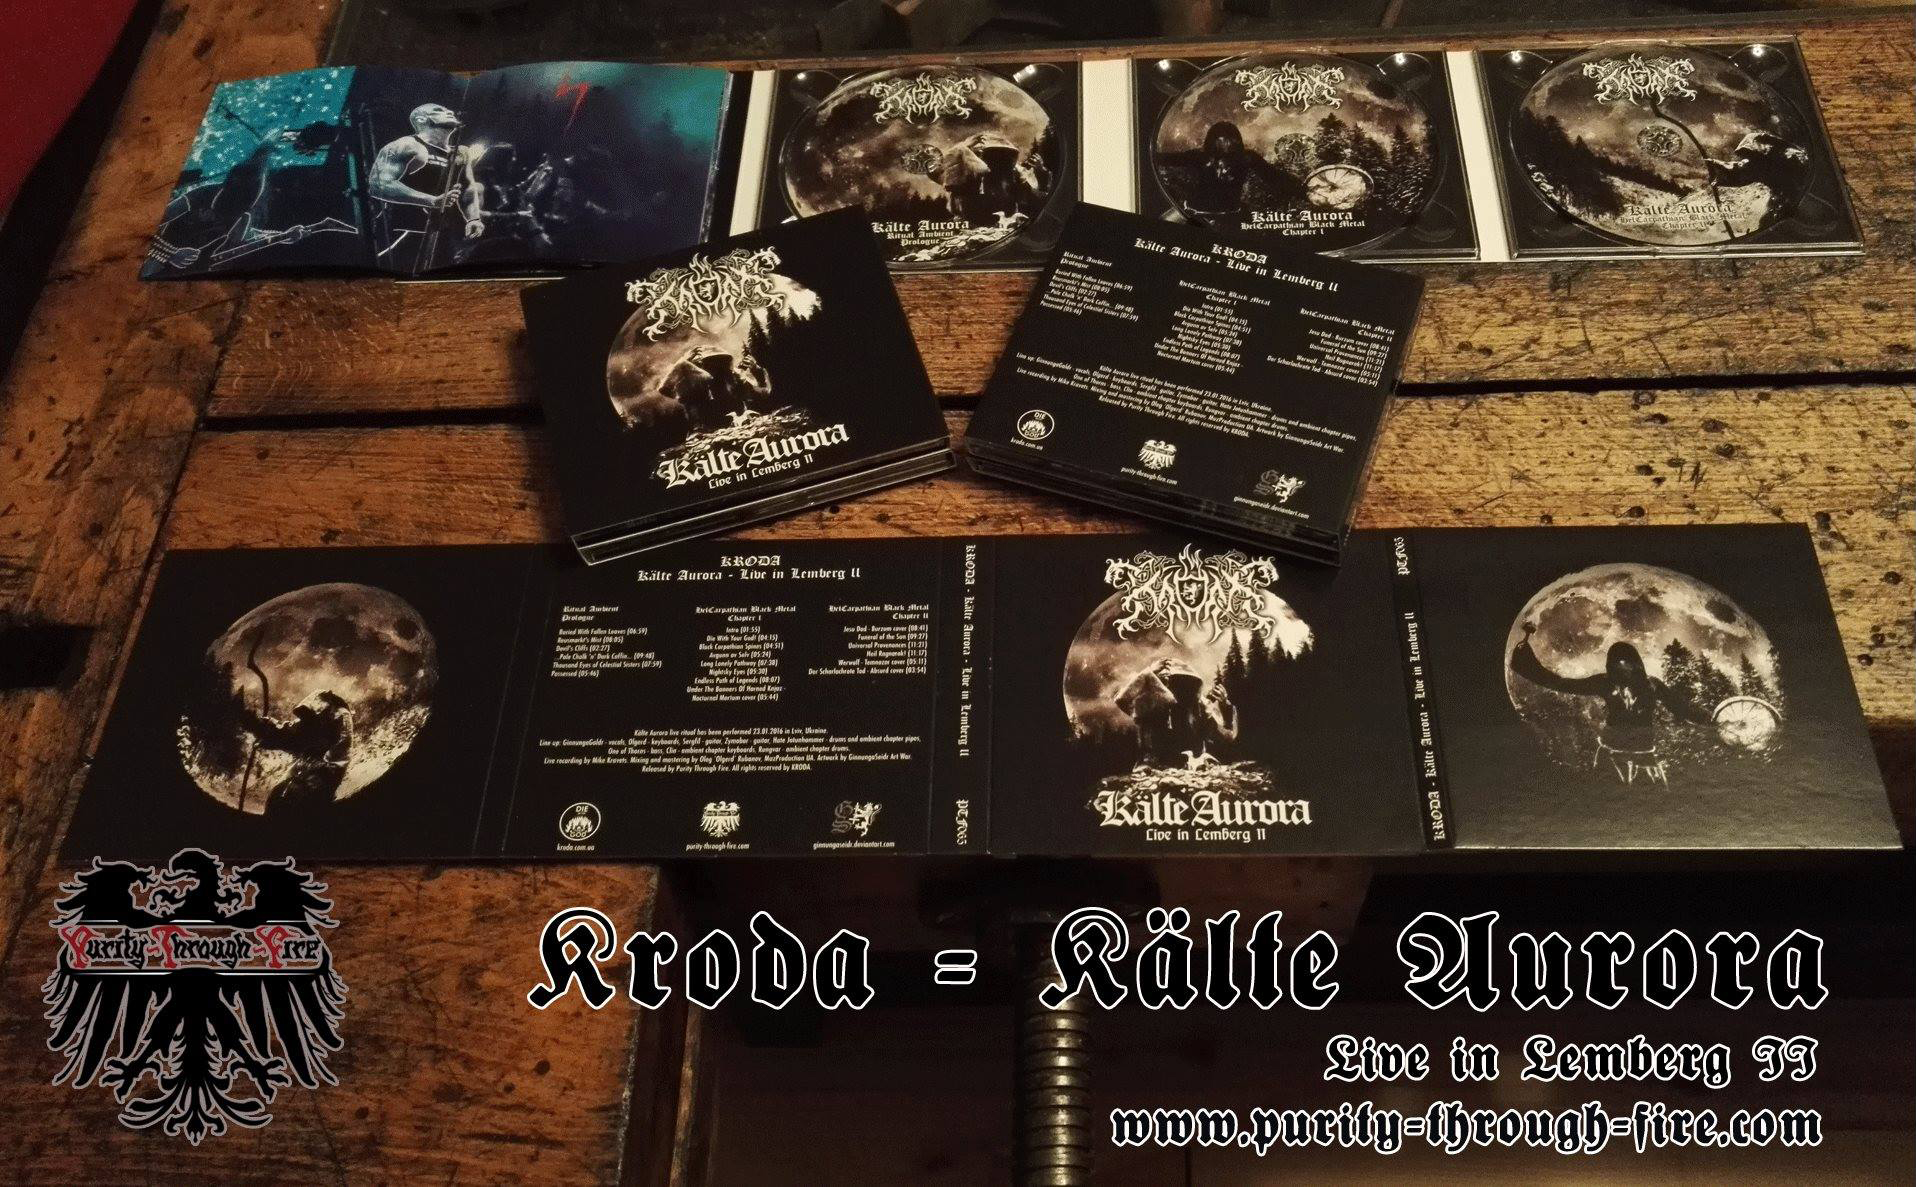 Released audio-version of KRODA Kalte Aurora - Live in Lemberg II